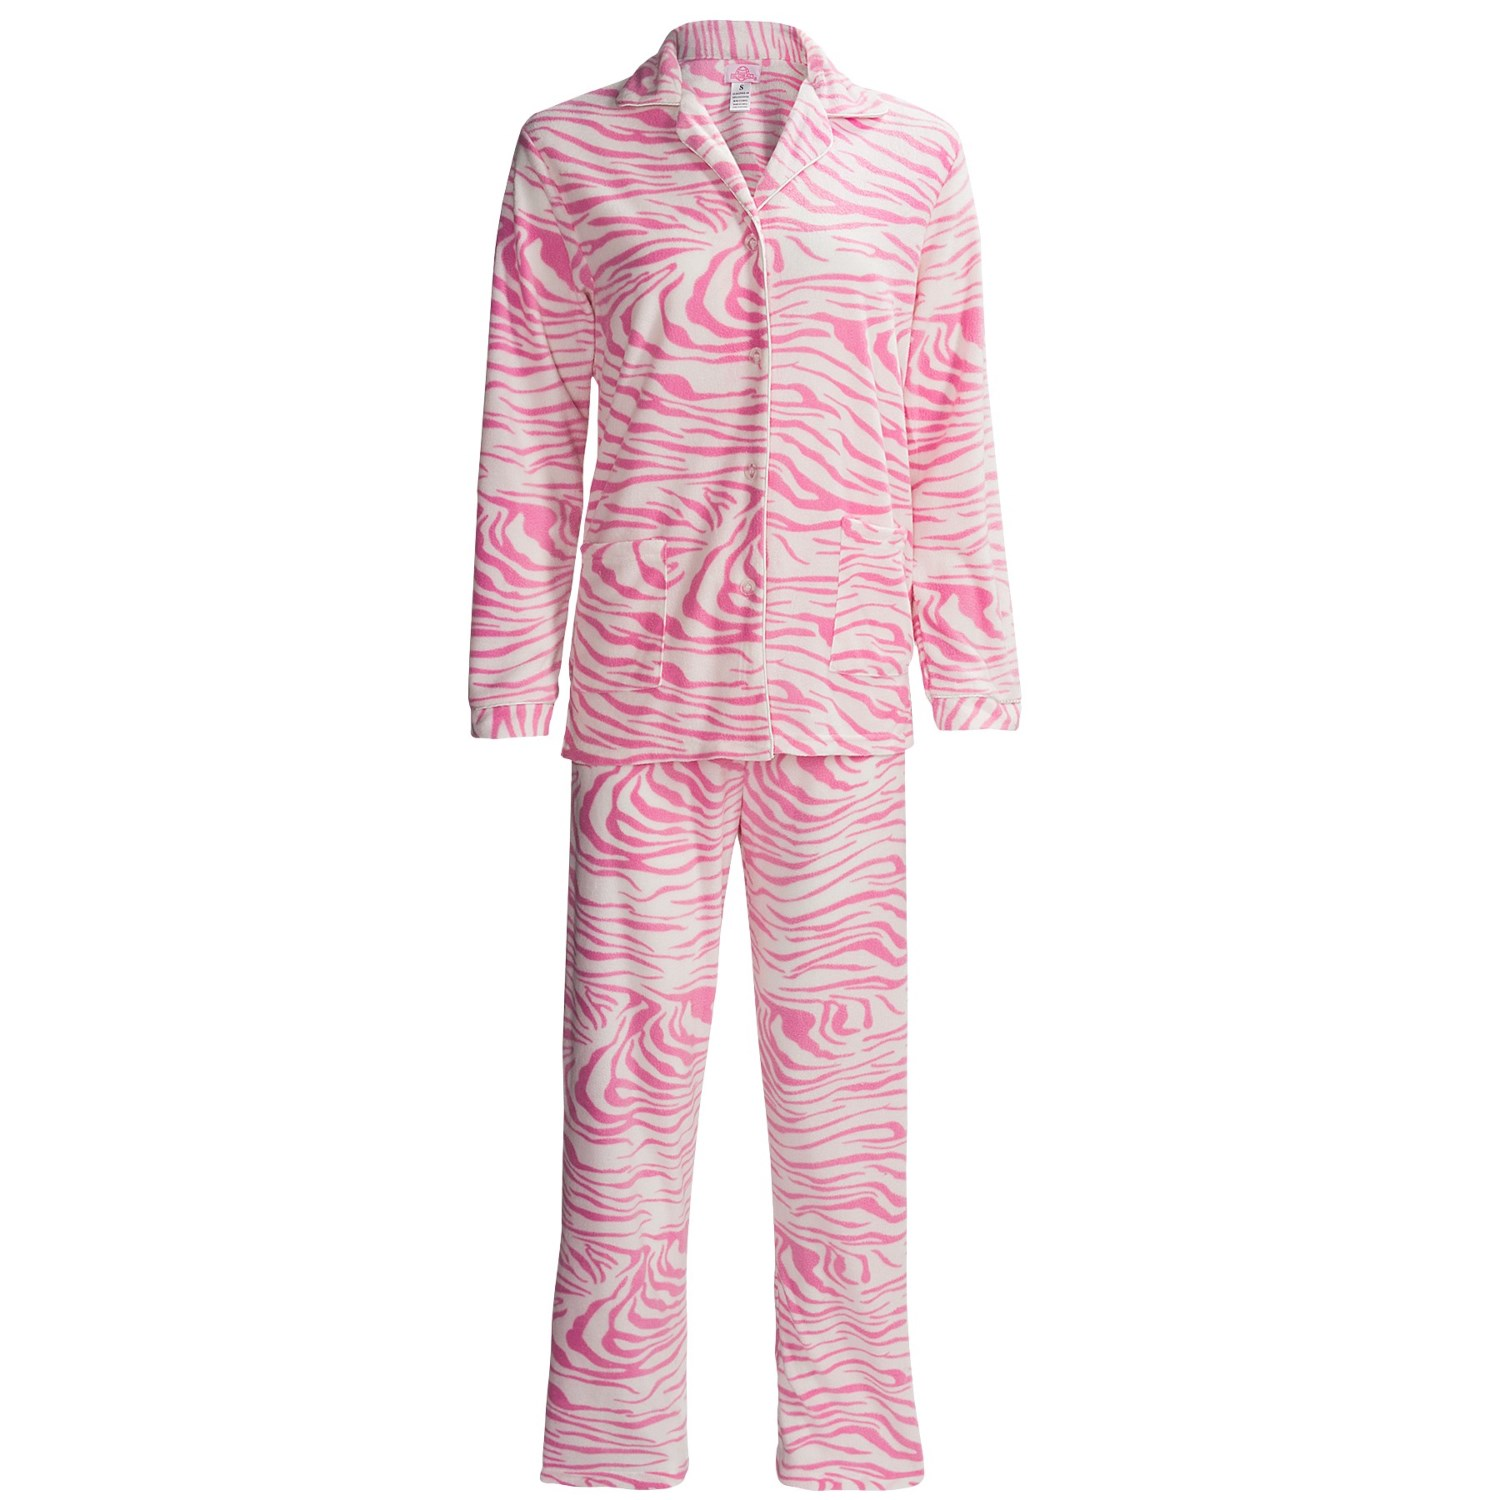 Women's Fleece Pajamas. Showing 40 of results that match your query. Search Product Result. Product - Womens Medium Fleece Lounge Pajama Bottoms Camo with Neon Pink Waist Band. Product Image. Price $ Product Title. Womens Medium Fleece Lounge Pajama Bottoms Camo with Neon Pink Waist Band.